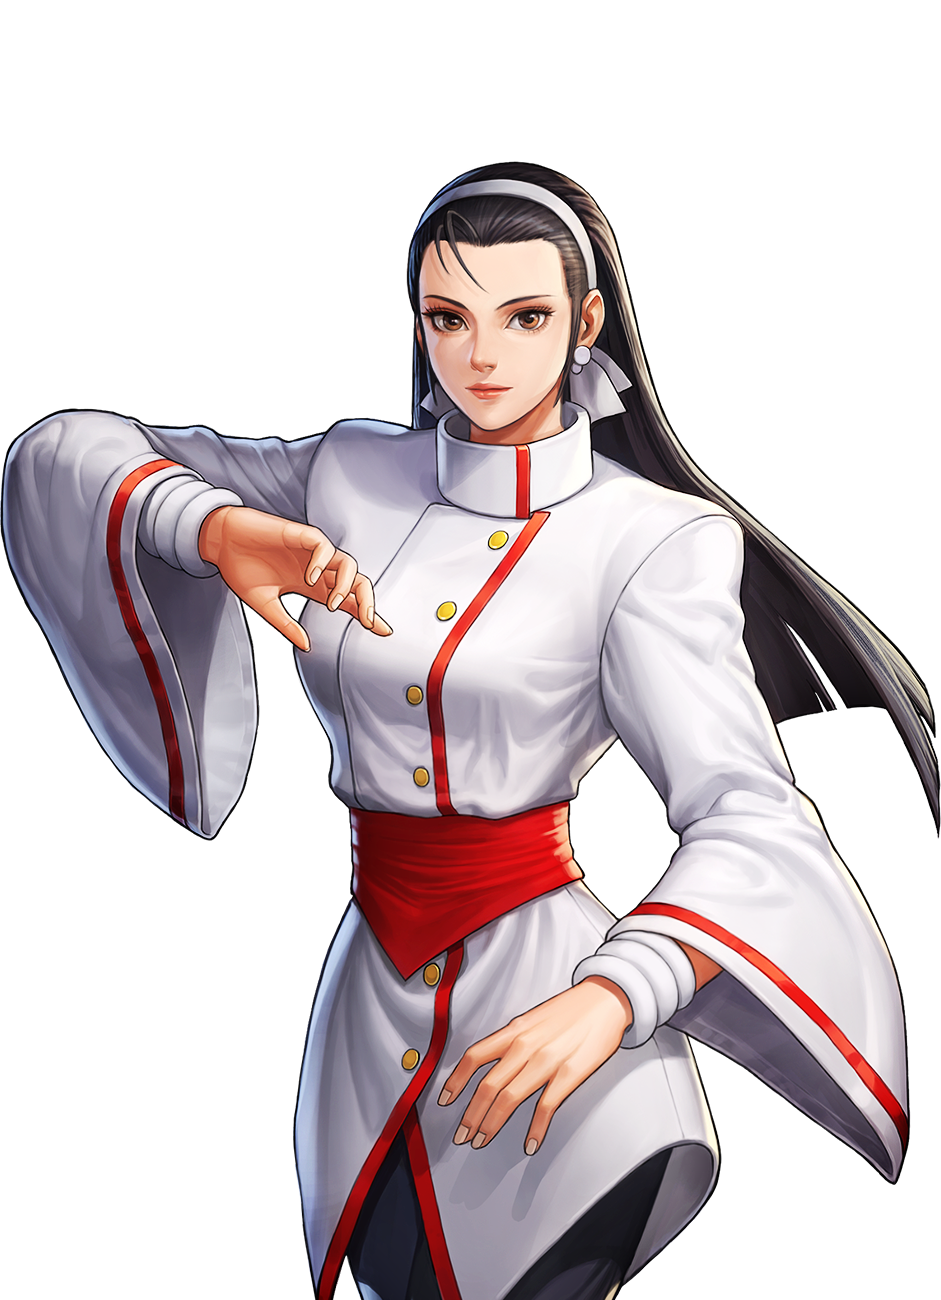 Kof All Star Chizuru Kagura By Abloodyrose 4 Cys On Deviantart